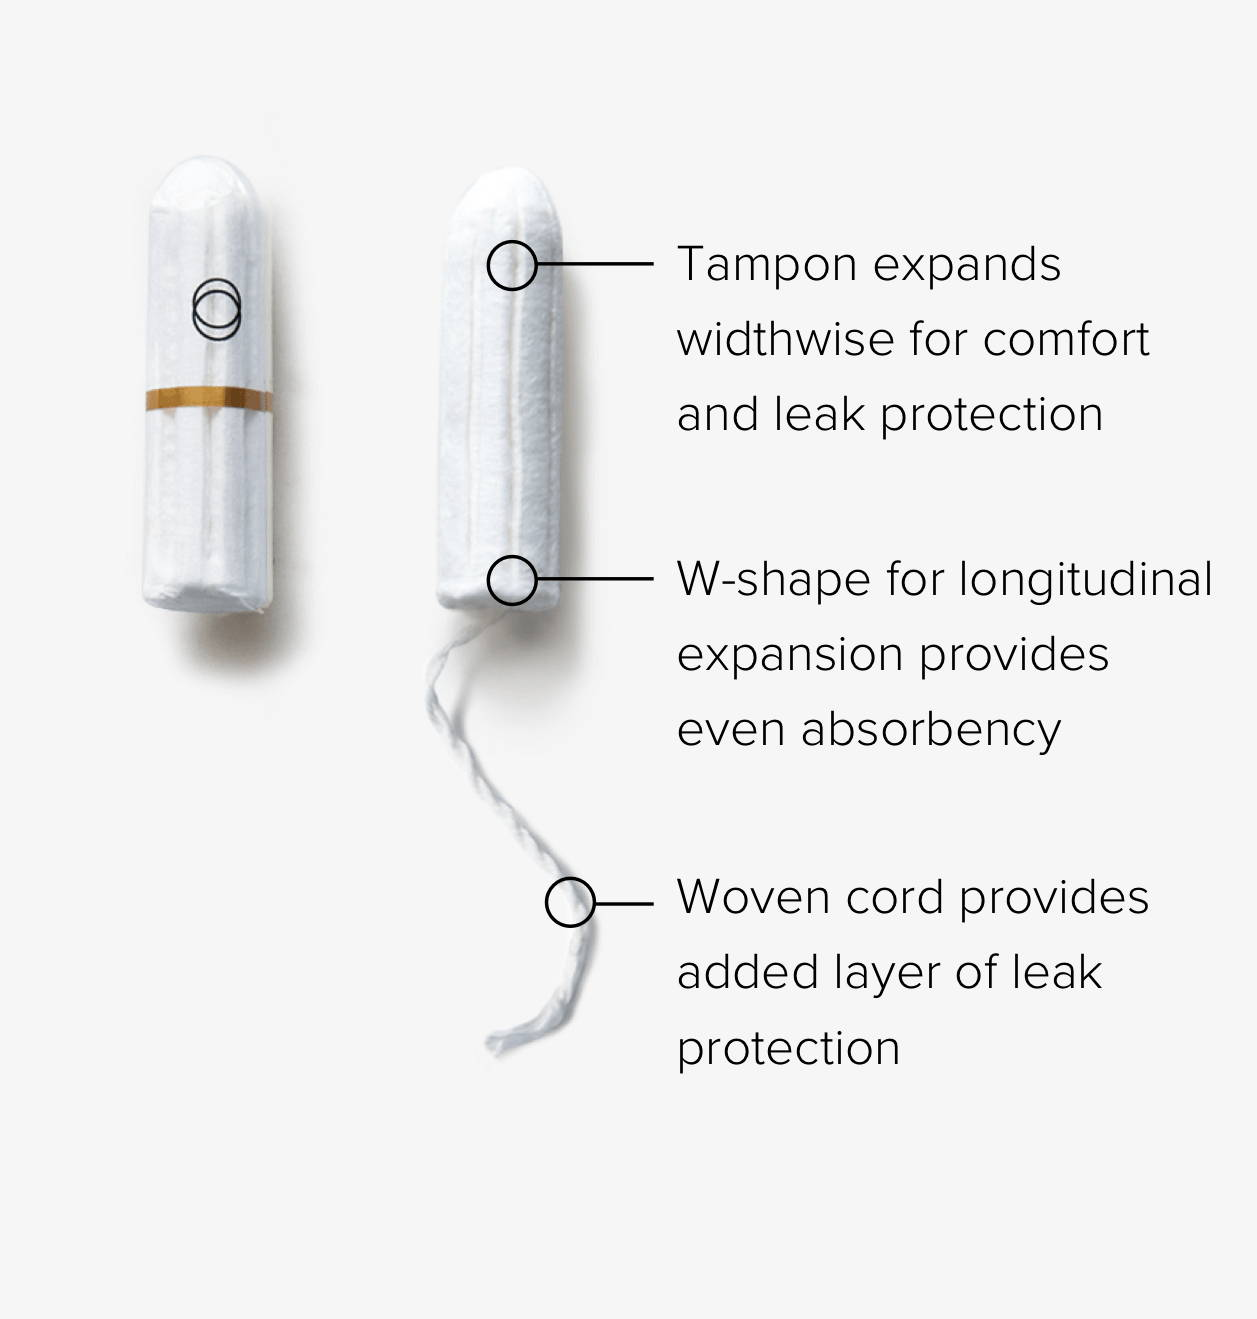 Two organic applicator-free tampons. One without a cord, one with a woven cord